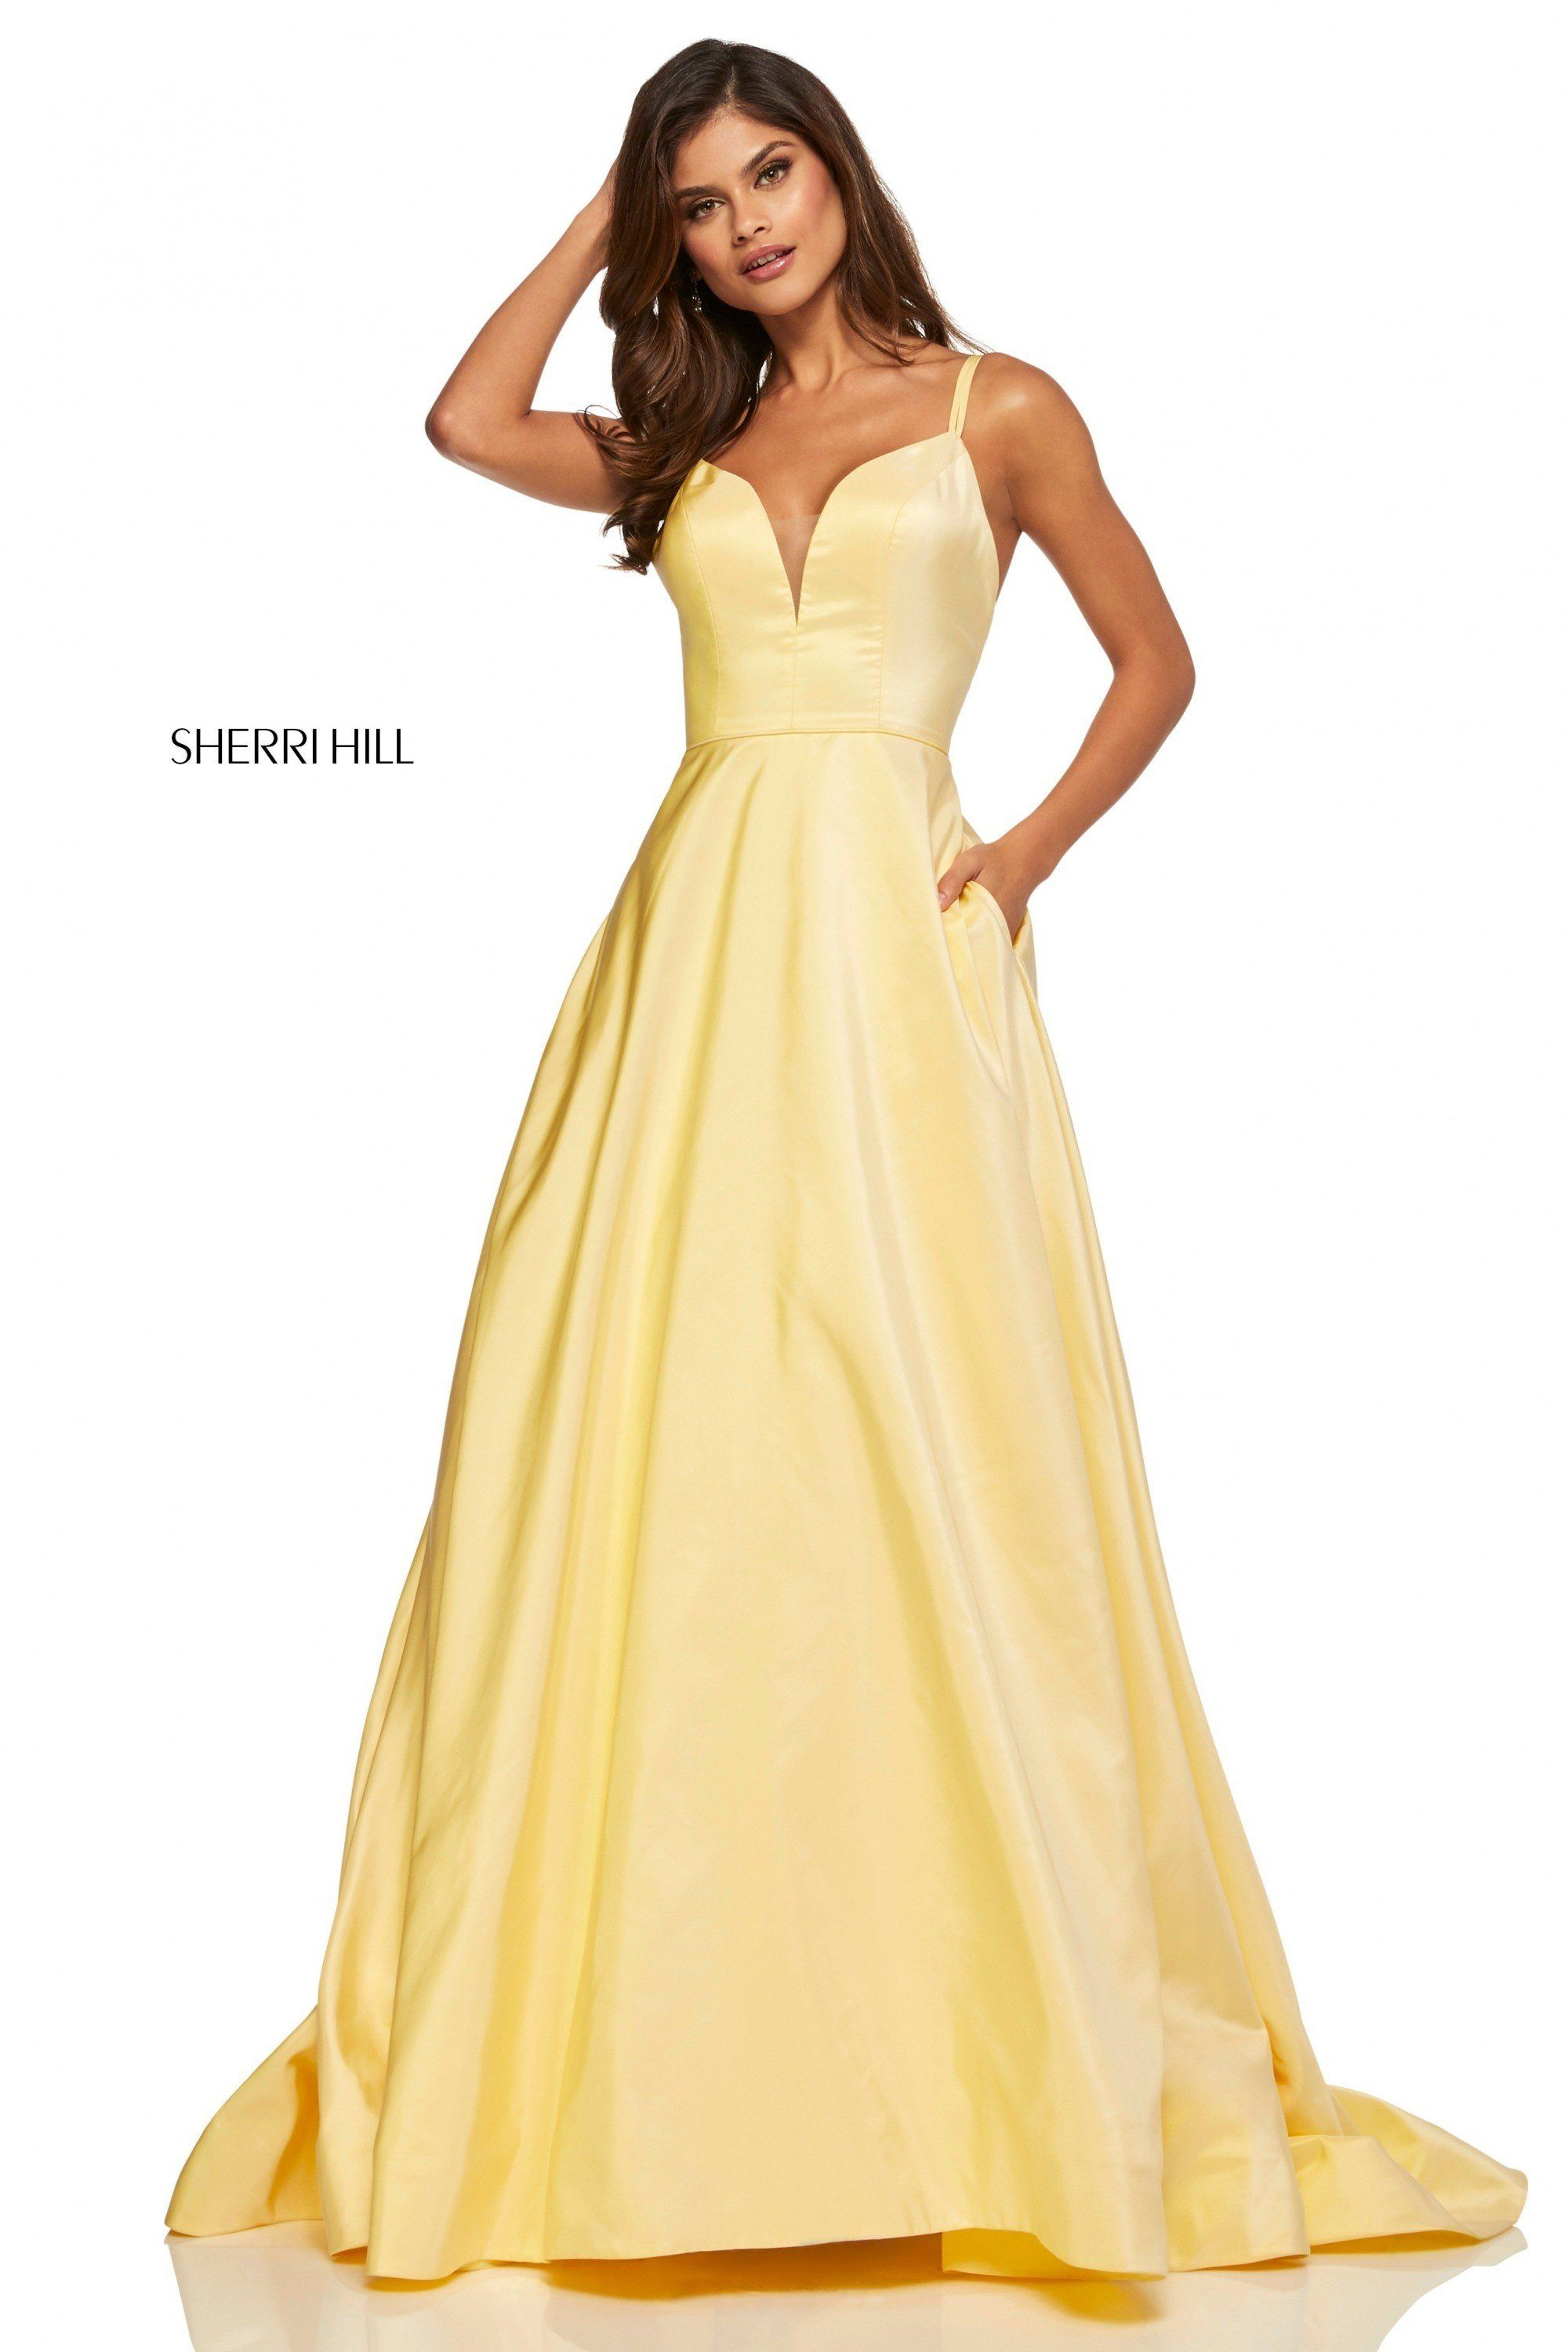 21a39672739 Sherri Hill 52506 Yellow Taffeta Ball Gown in 2019